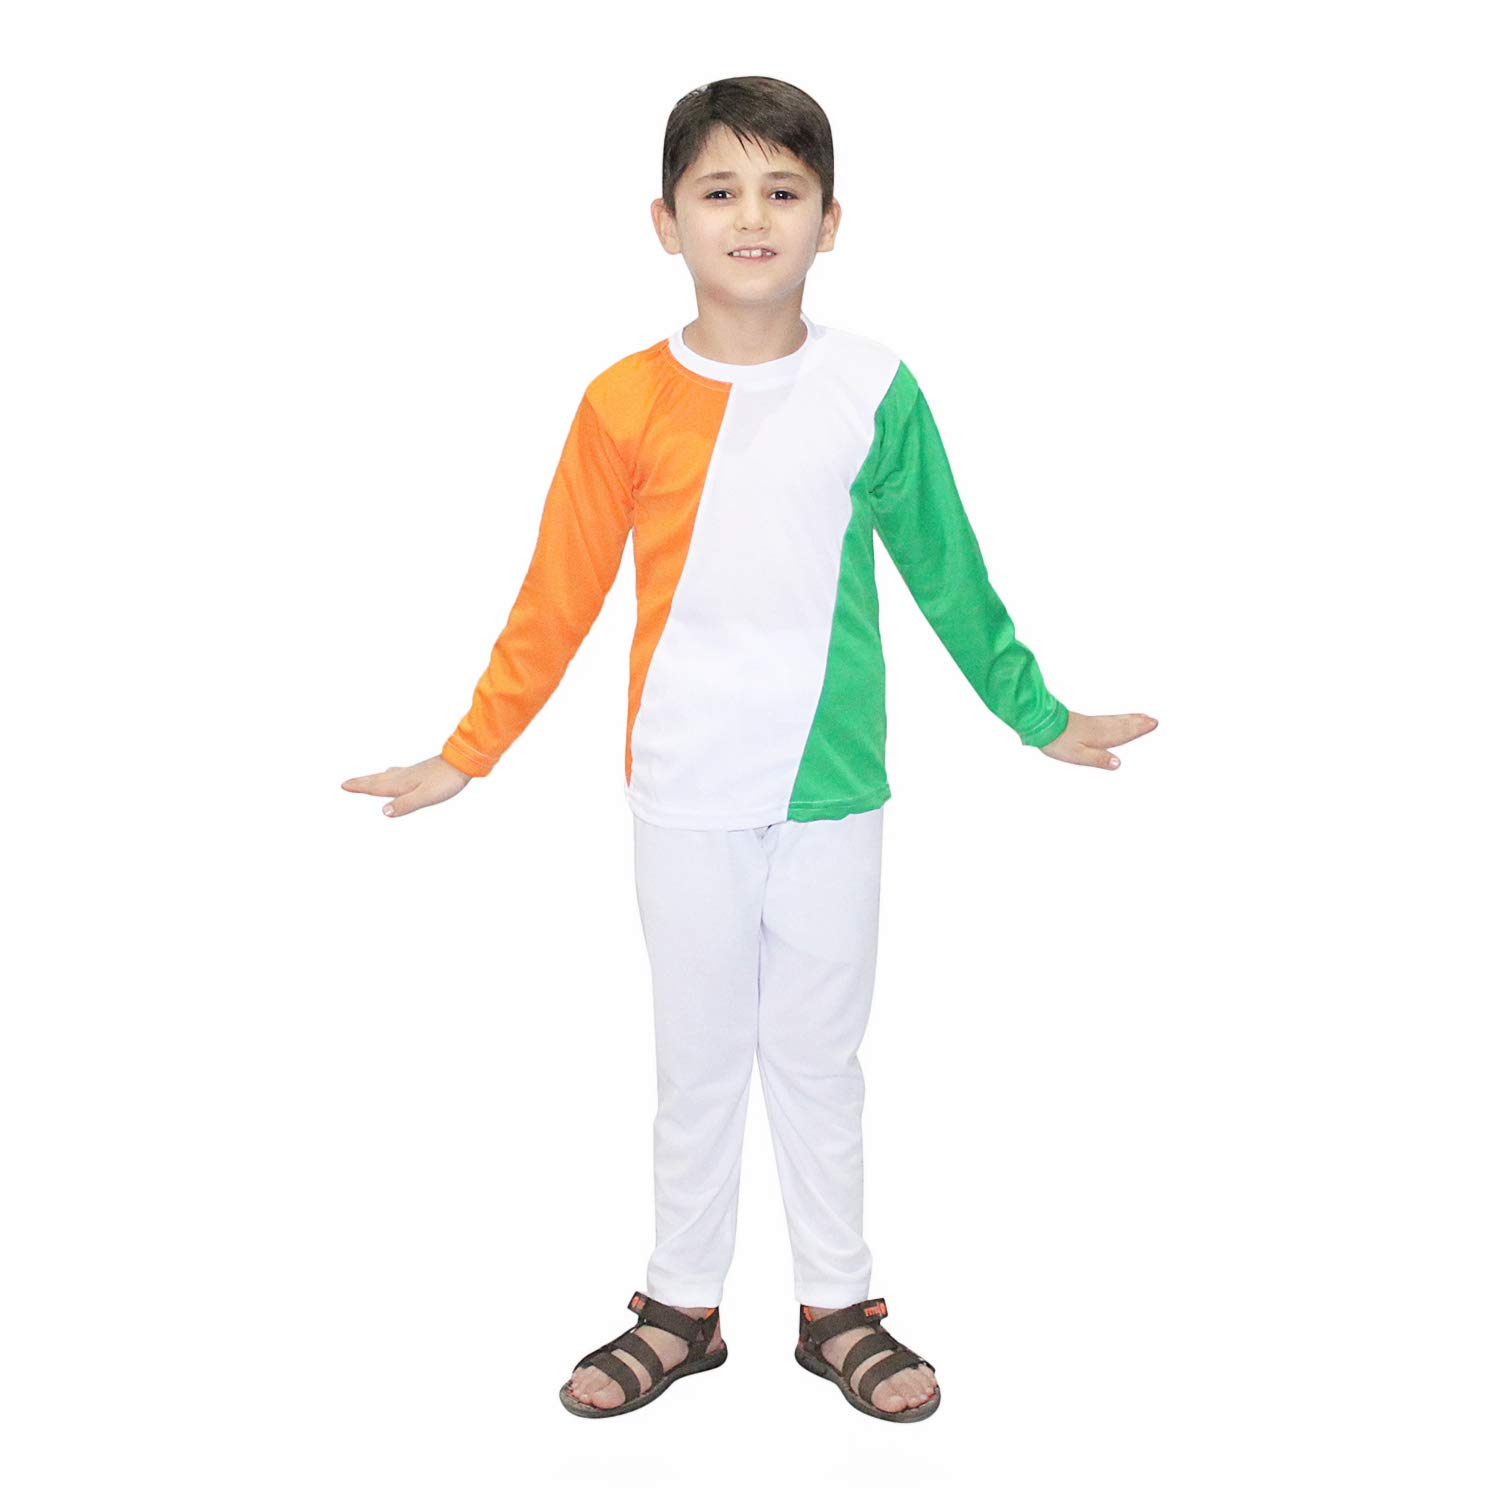 Independence Day Special Dress For Boy's in India 2021